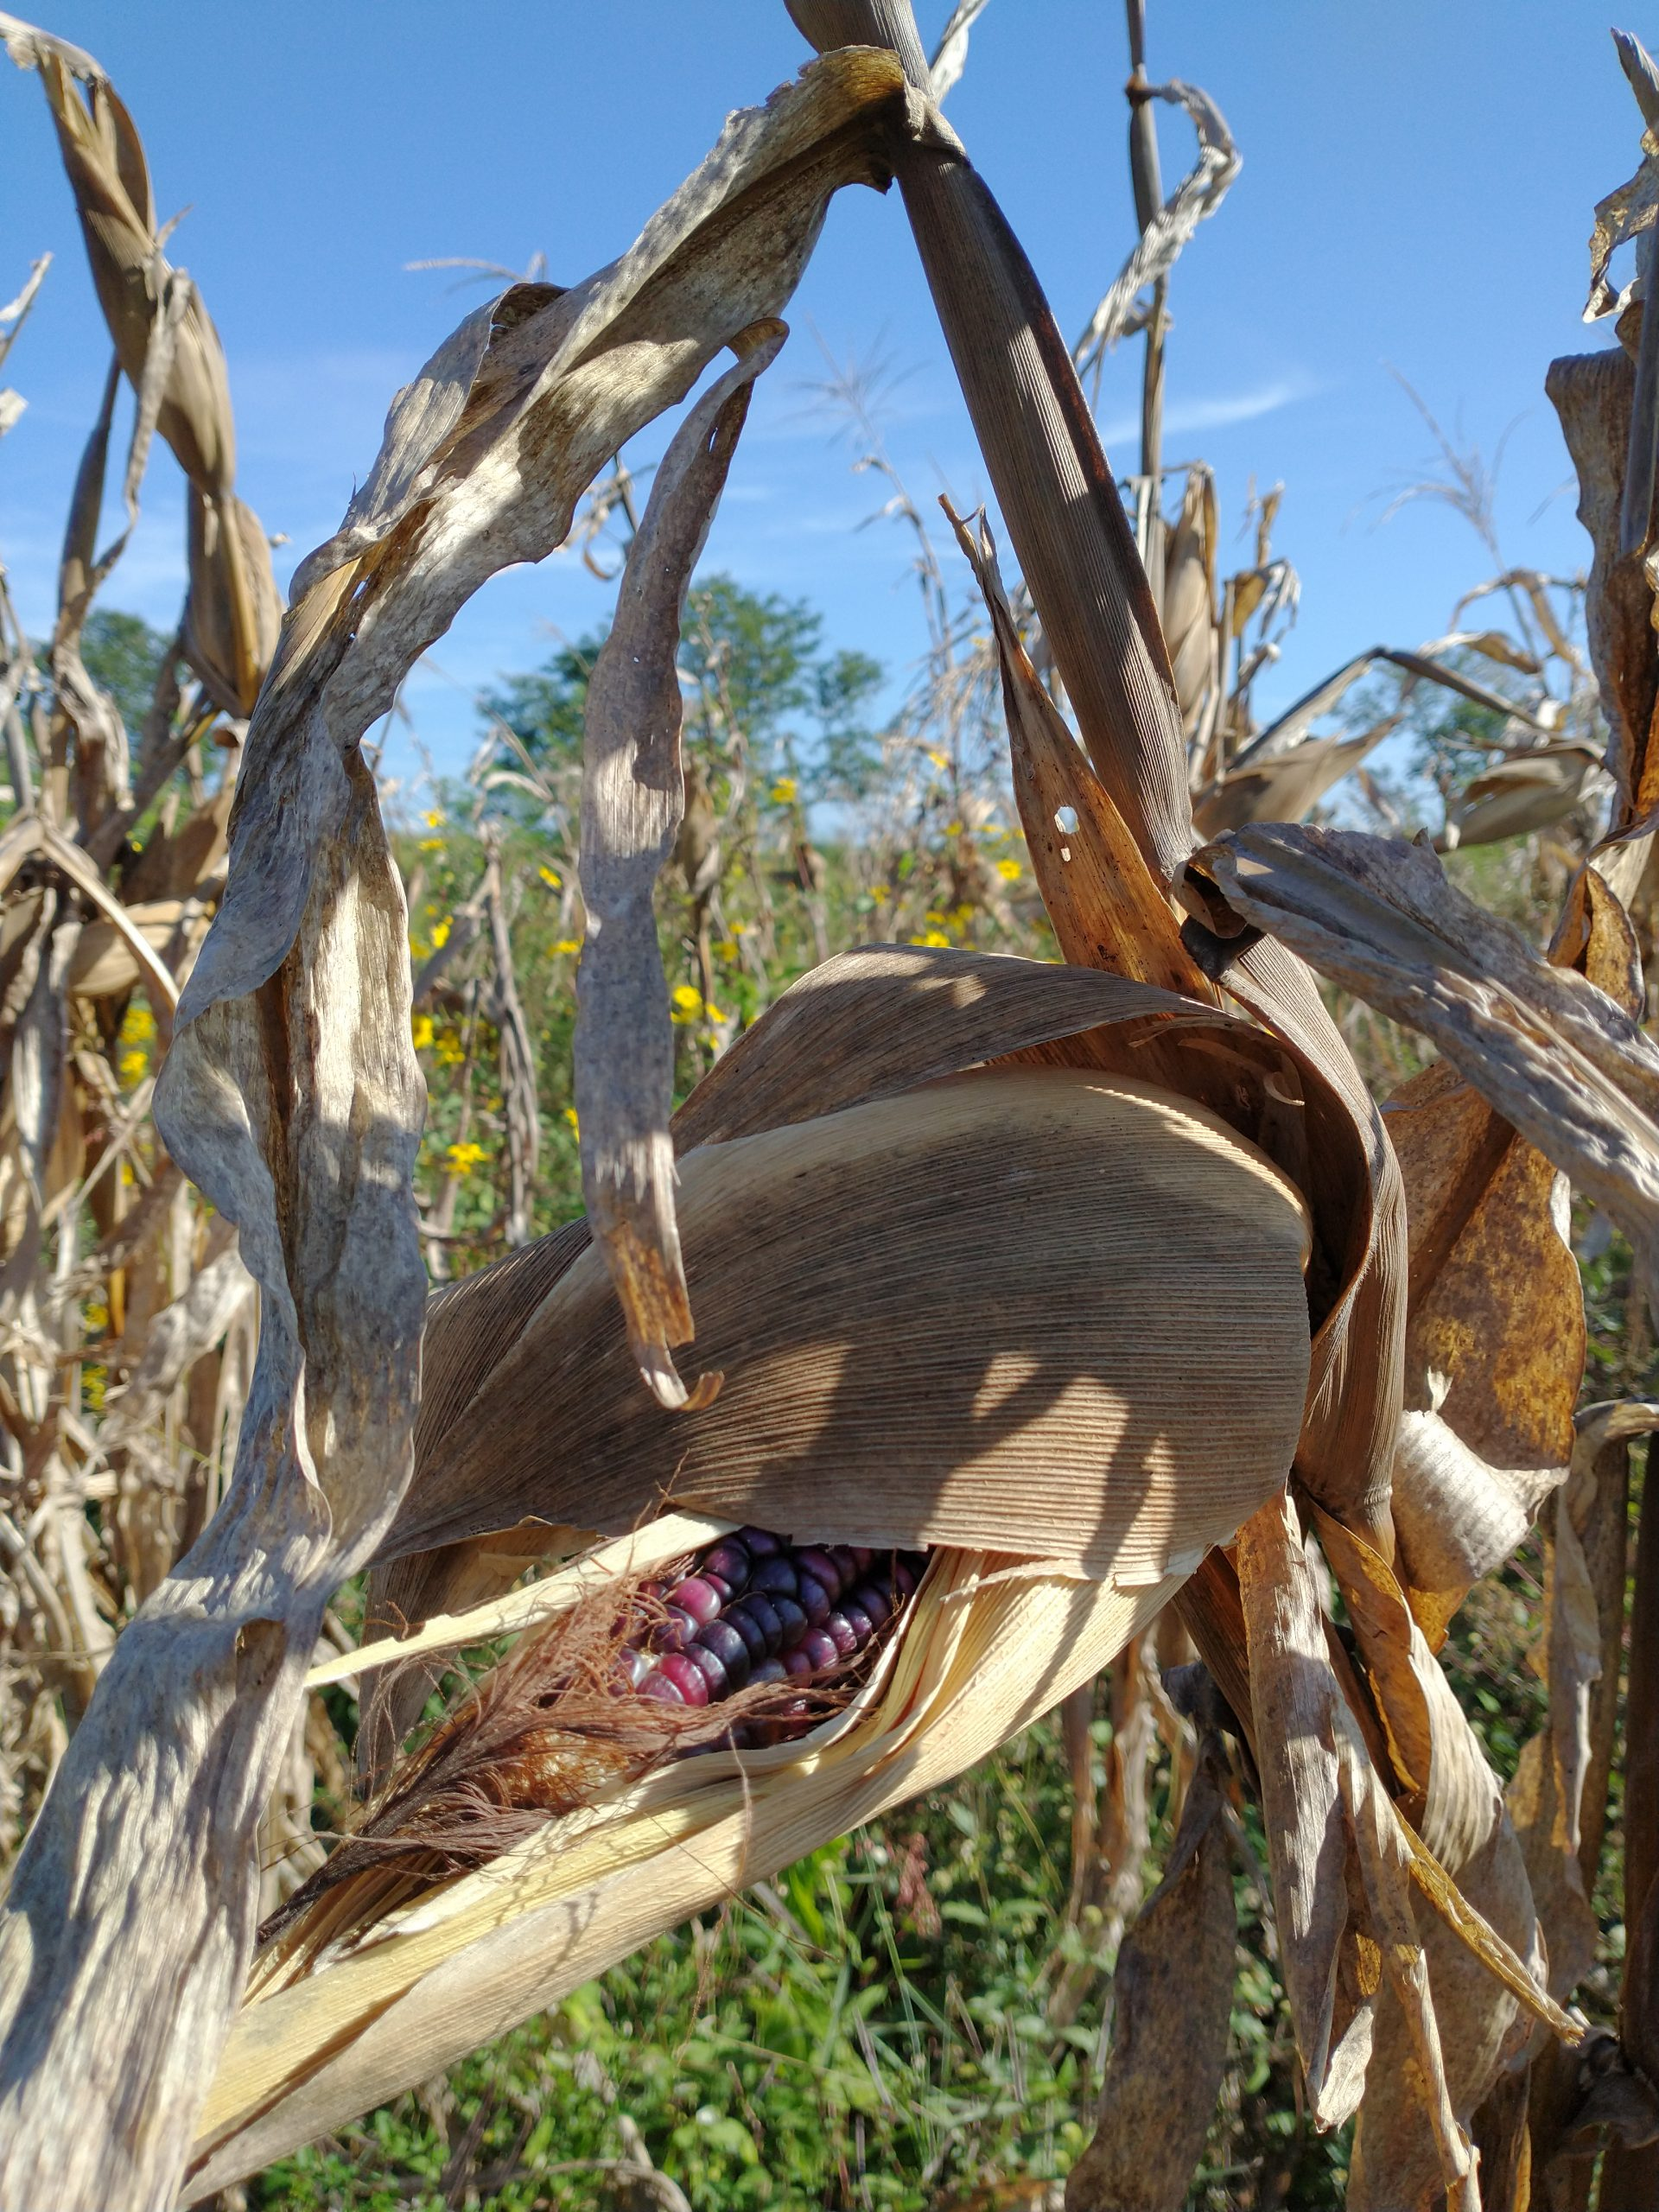 Local purple maize variety called Eh-Jub cultivated and ready to be harvested in a milpa in Maxcanu community in Western Yucatan - by Karla G. Hernandez-Aguilar